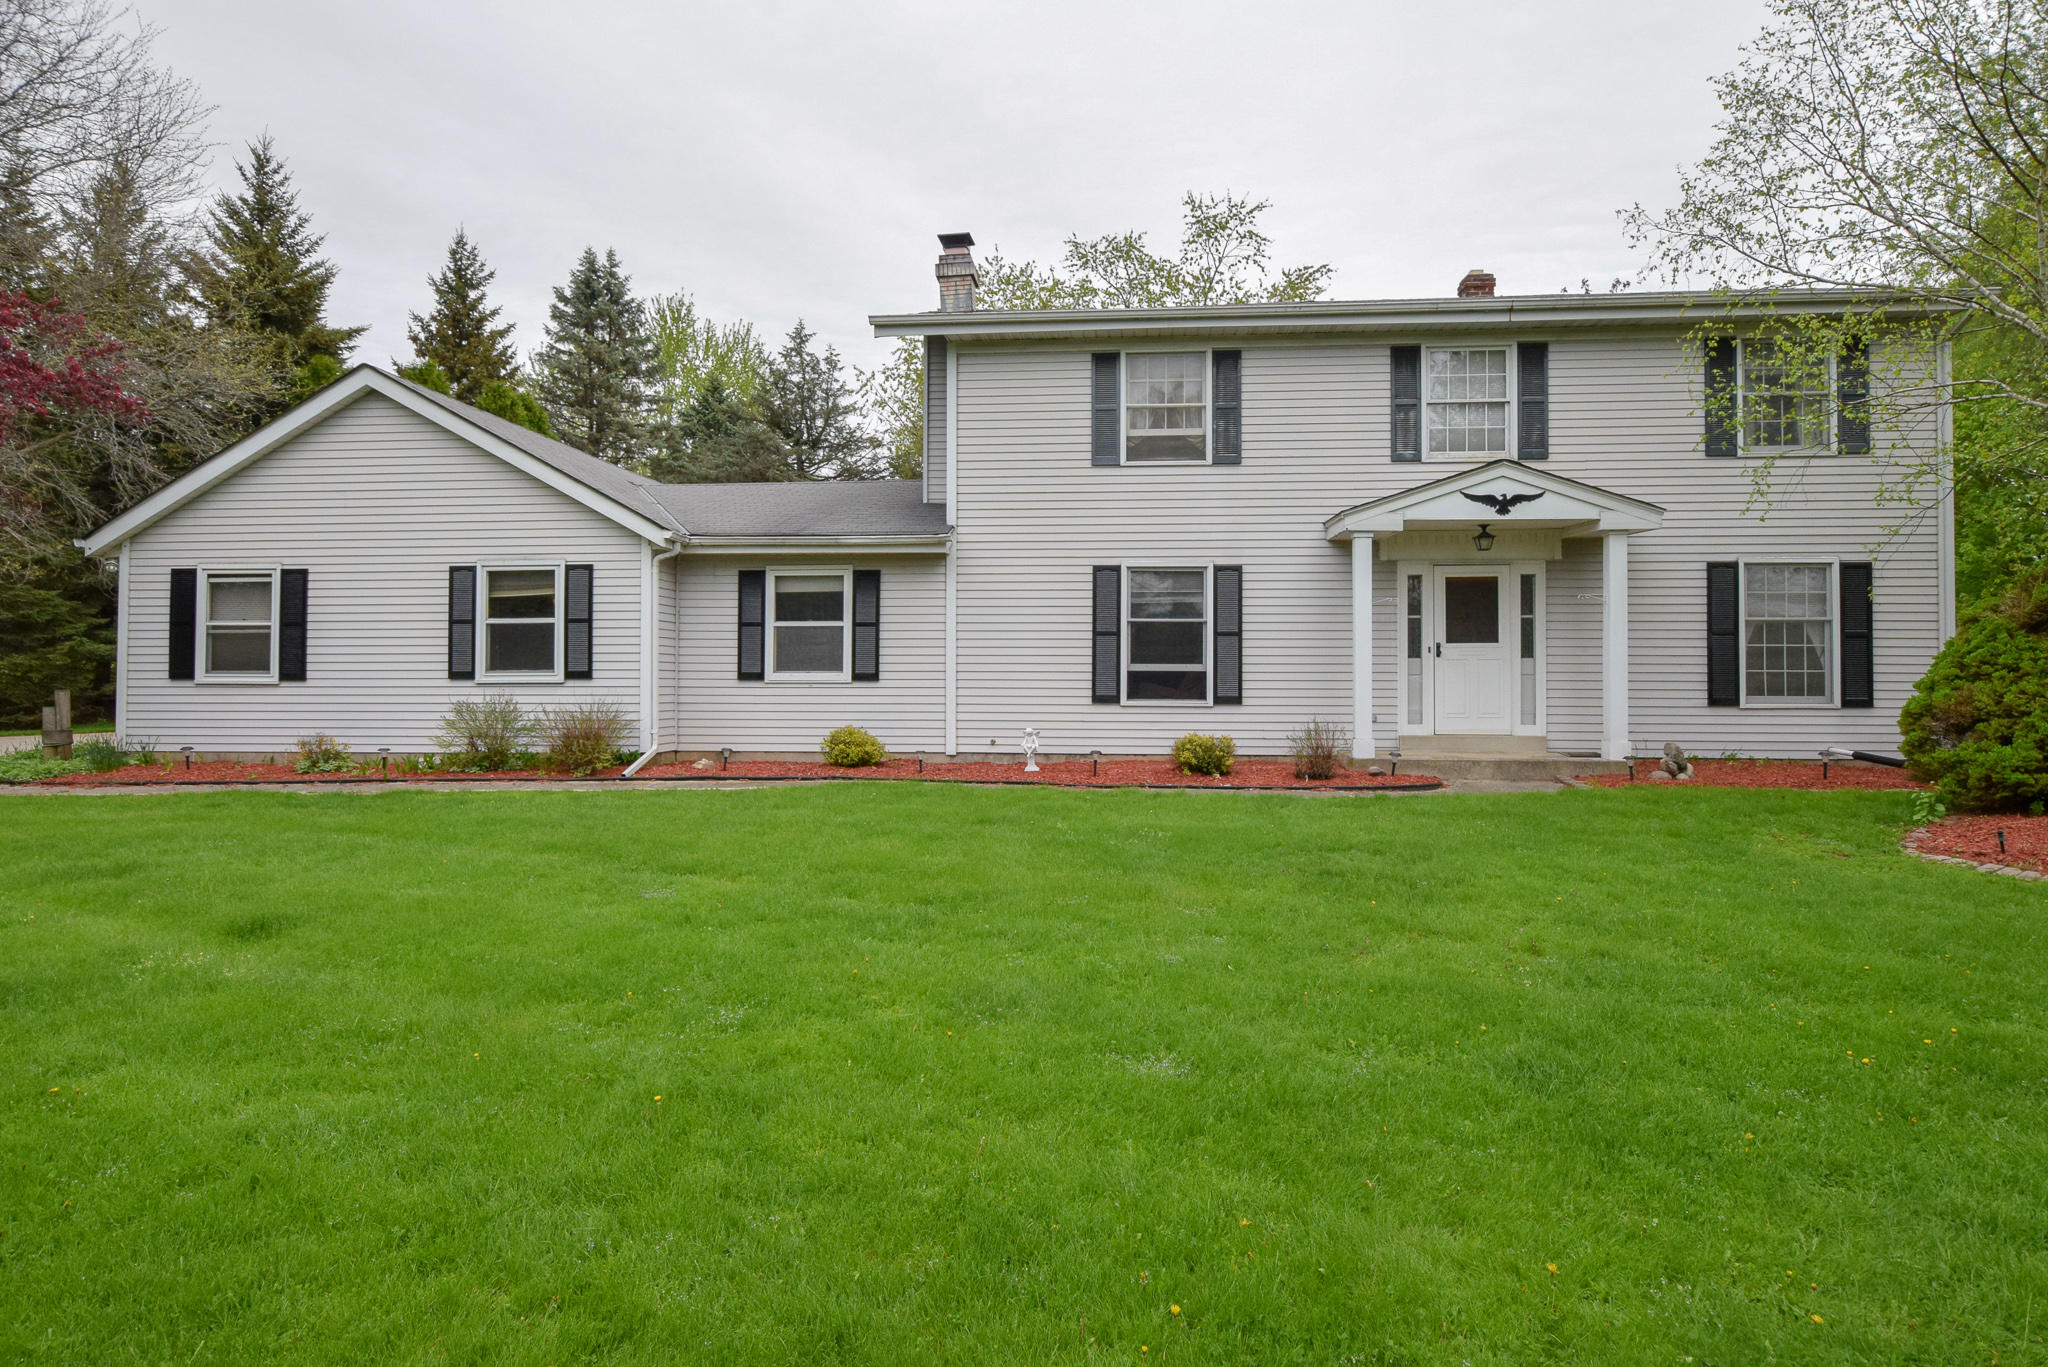 W271N1944 Fieldhack Dr, Pewaukee, Wisconsin 53072, 3 Bedrooms Bedrooms, 8 Rooms Rooms,1 BathroomBathrooms,Single-Family,For Sale,Fieldhack Dr,1637703